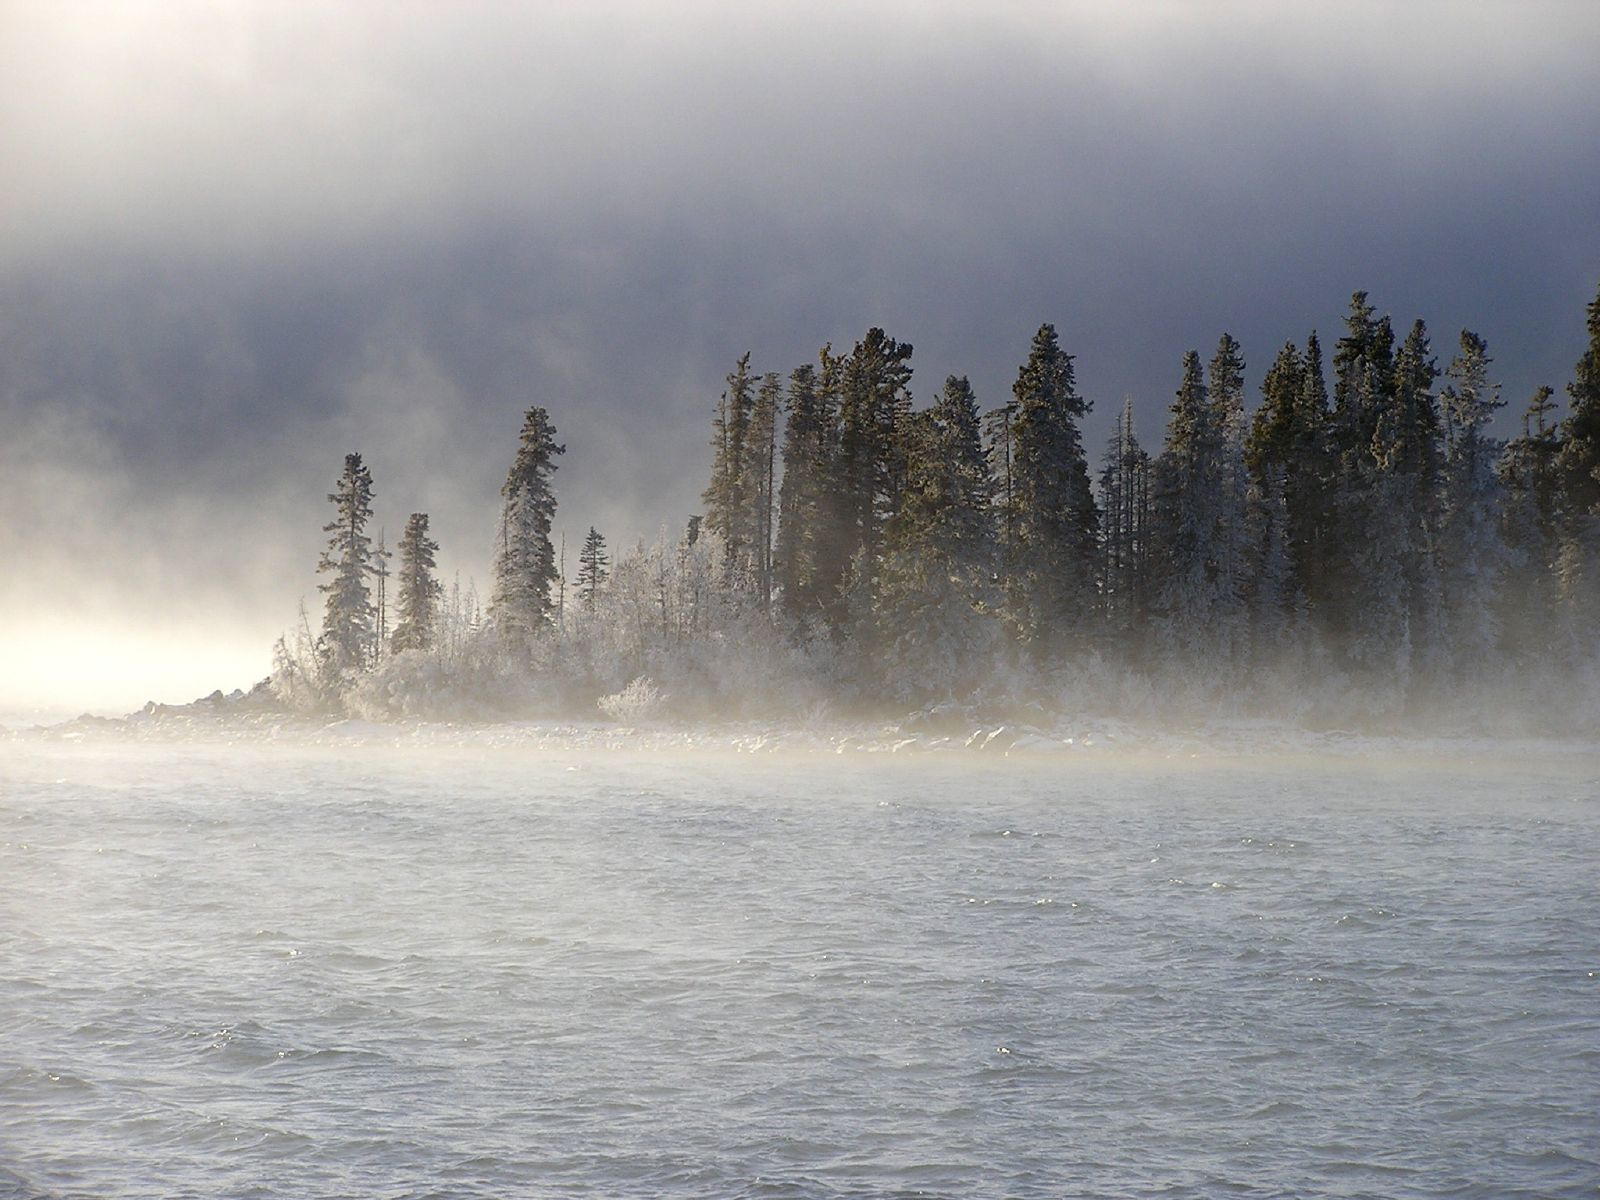 winter fog in canada pine forest